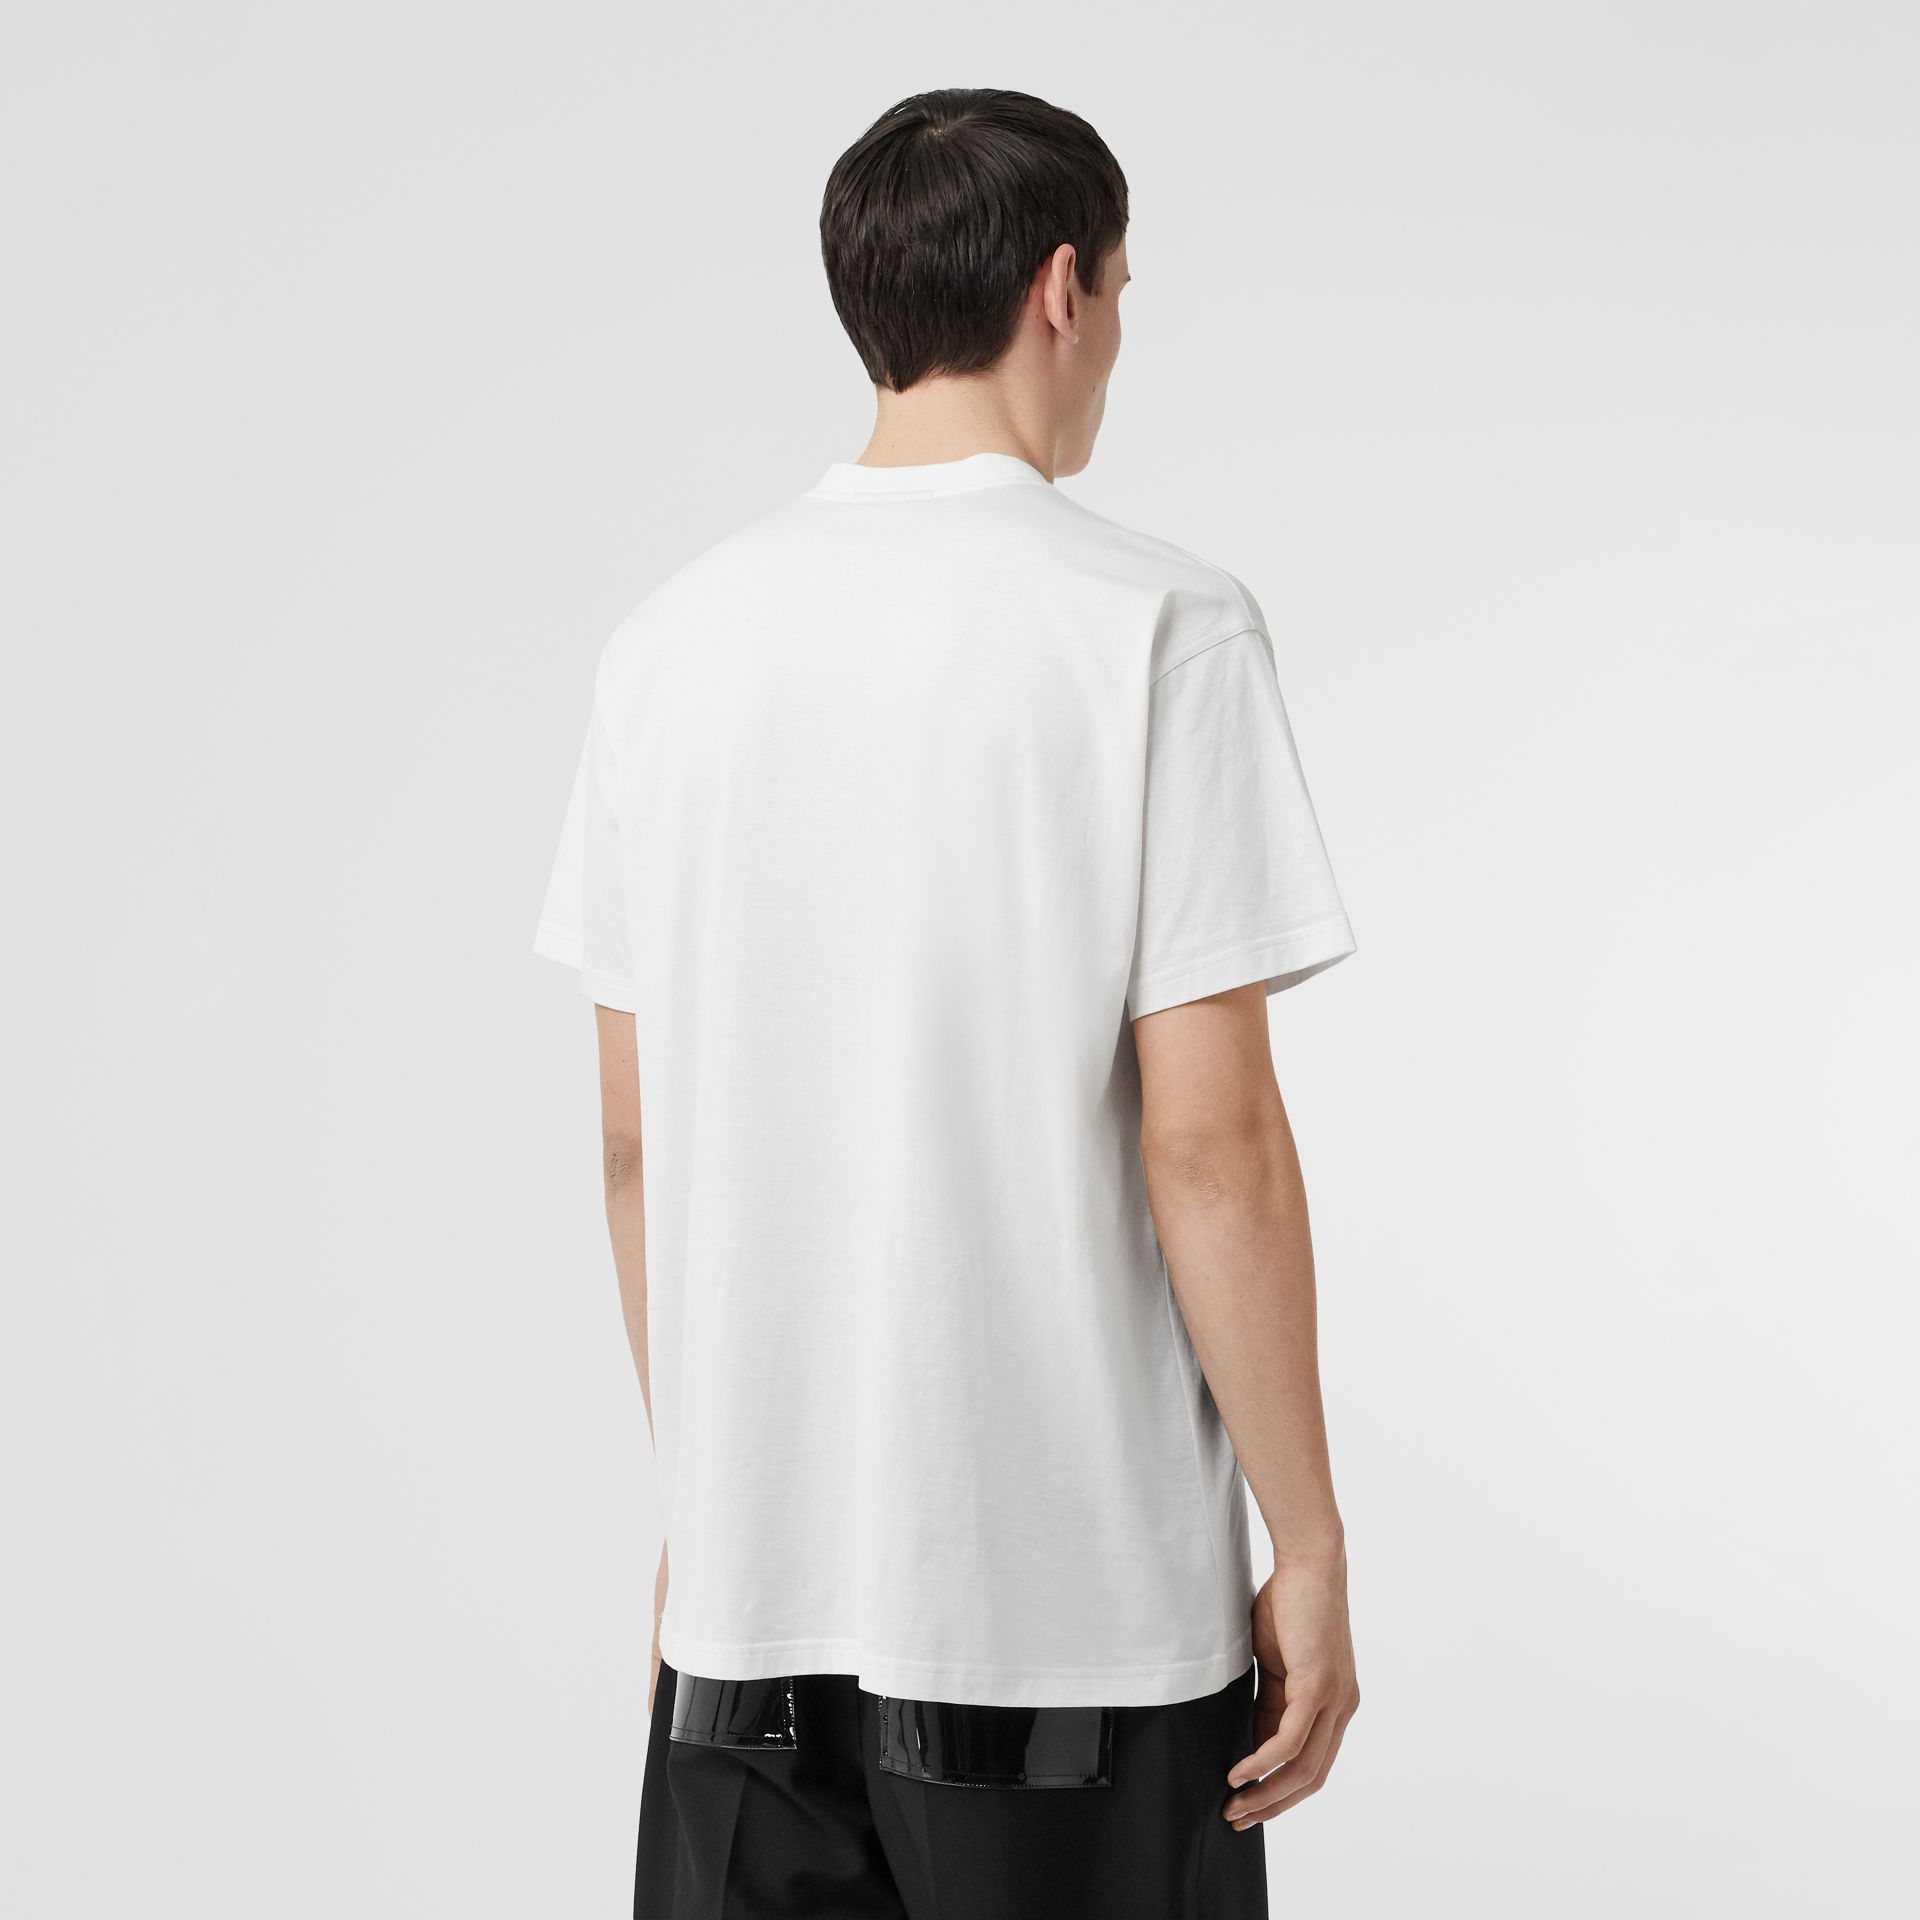 Kingdom Print Cotton T-shirt in White - Men | Burberry - gallery image 2